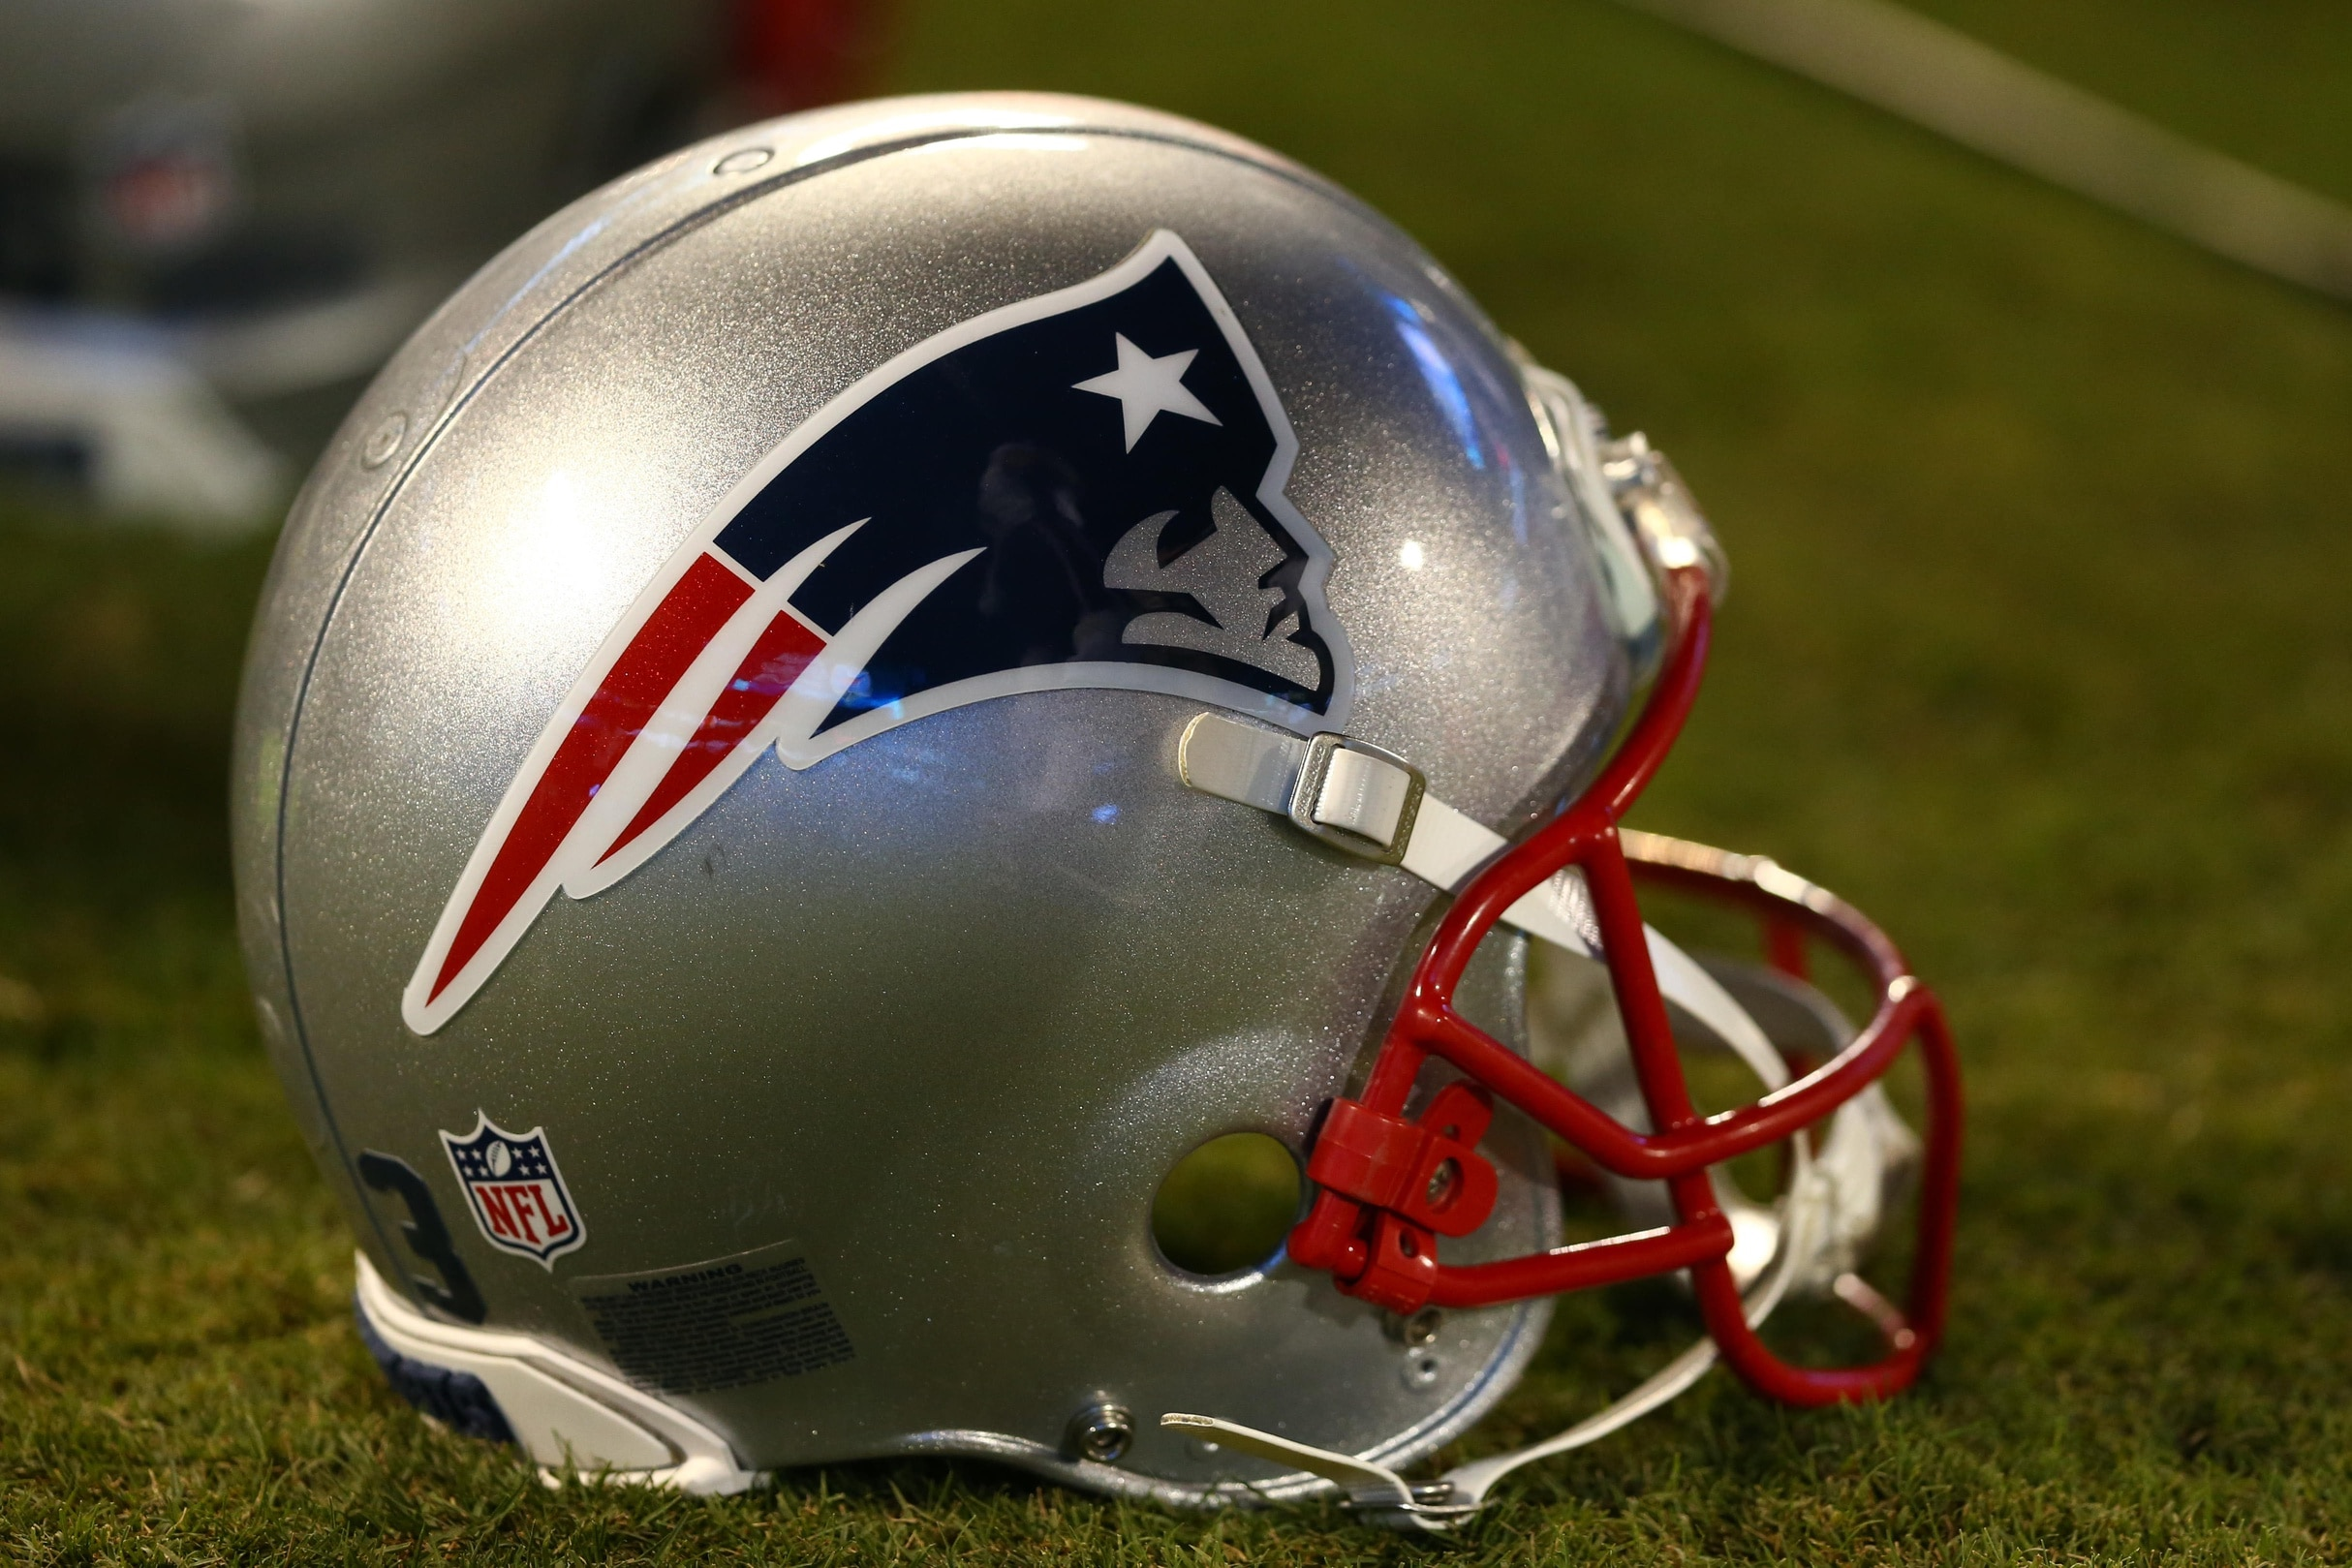 New England Patriots Rookie Justin Rohrwasser Gets Controversial Tattoo Removed